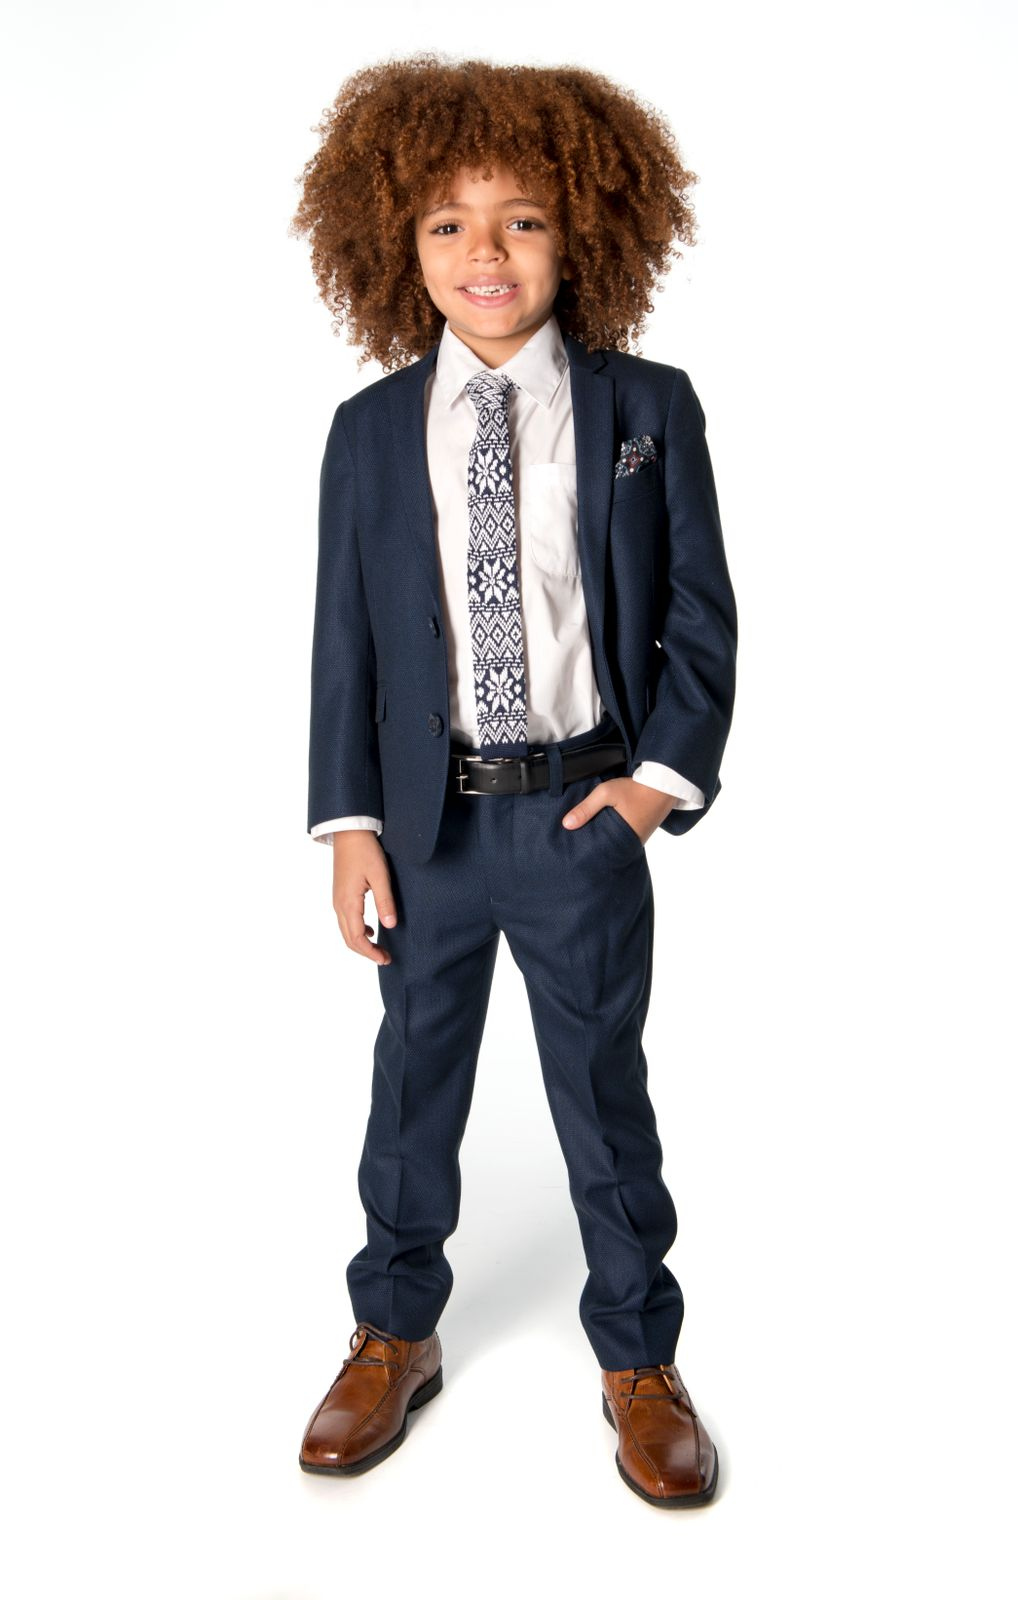 fdd4a6155 Appaman Blue & Black Nailhead Elegant 2pc Little Boy's Suit 6 Last 1 ...